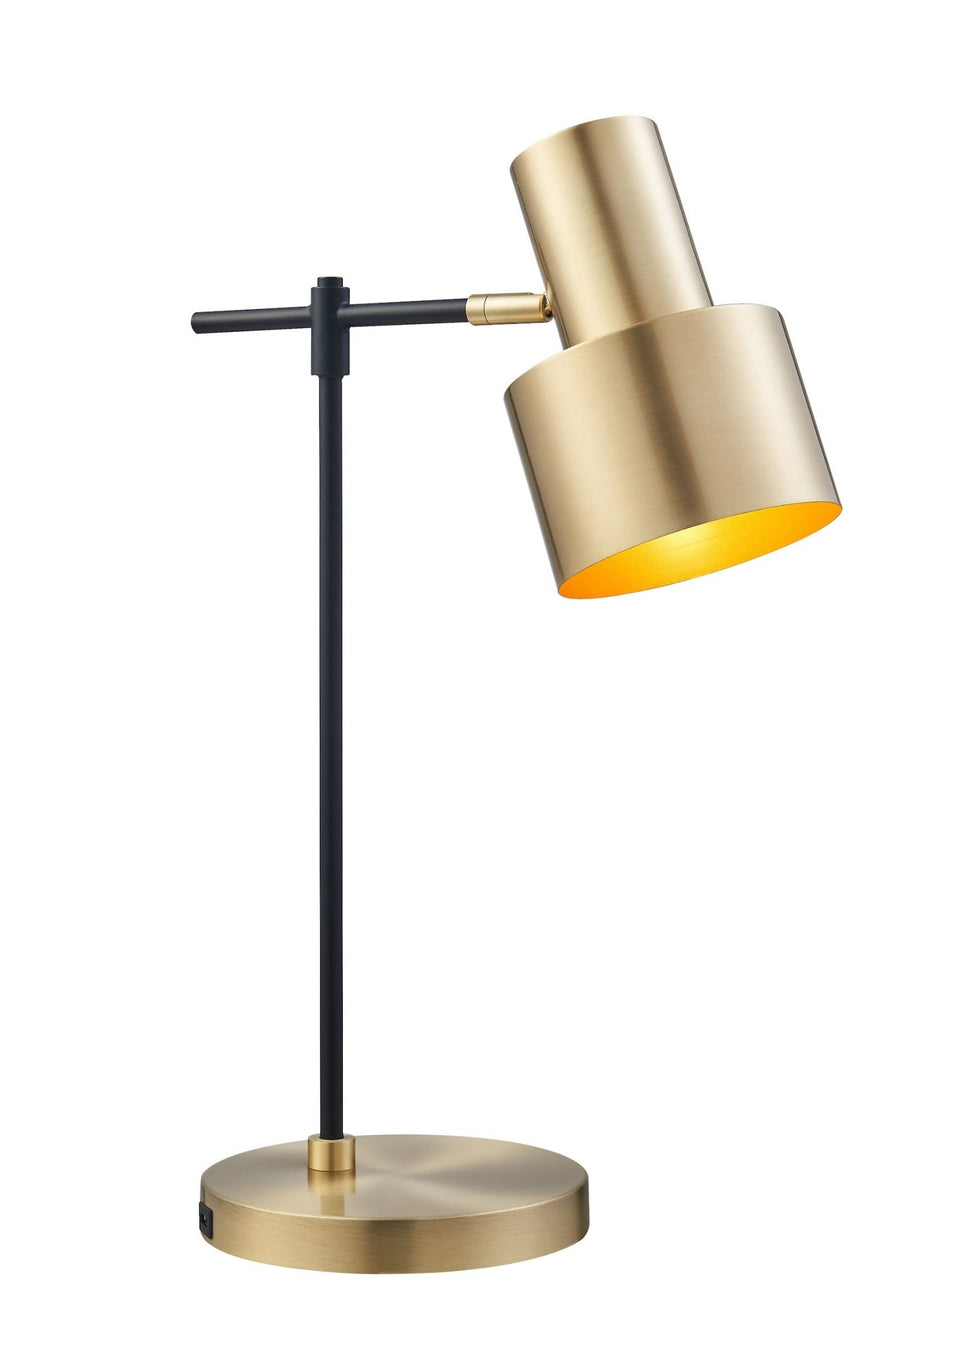 EDGE Table Lamp with USB (Set of 2) - Archiology